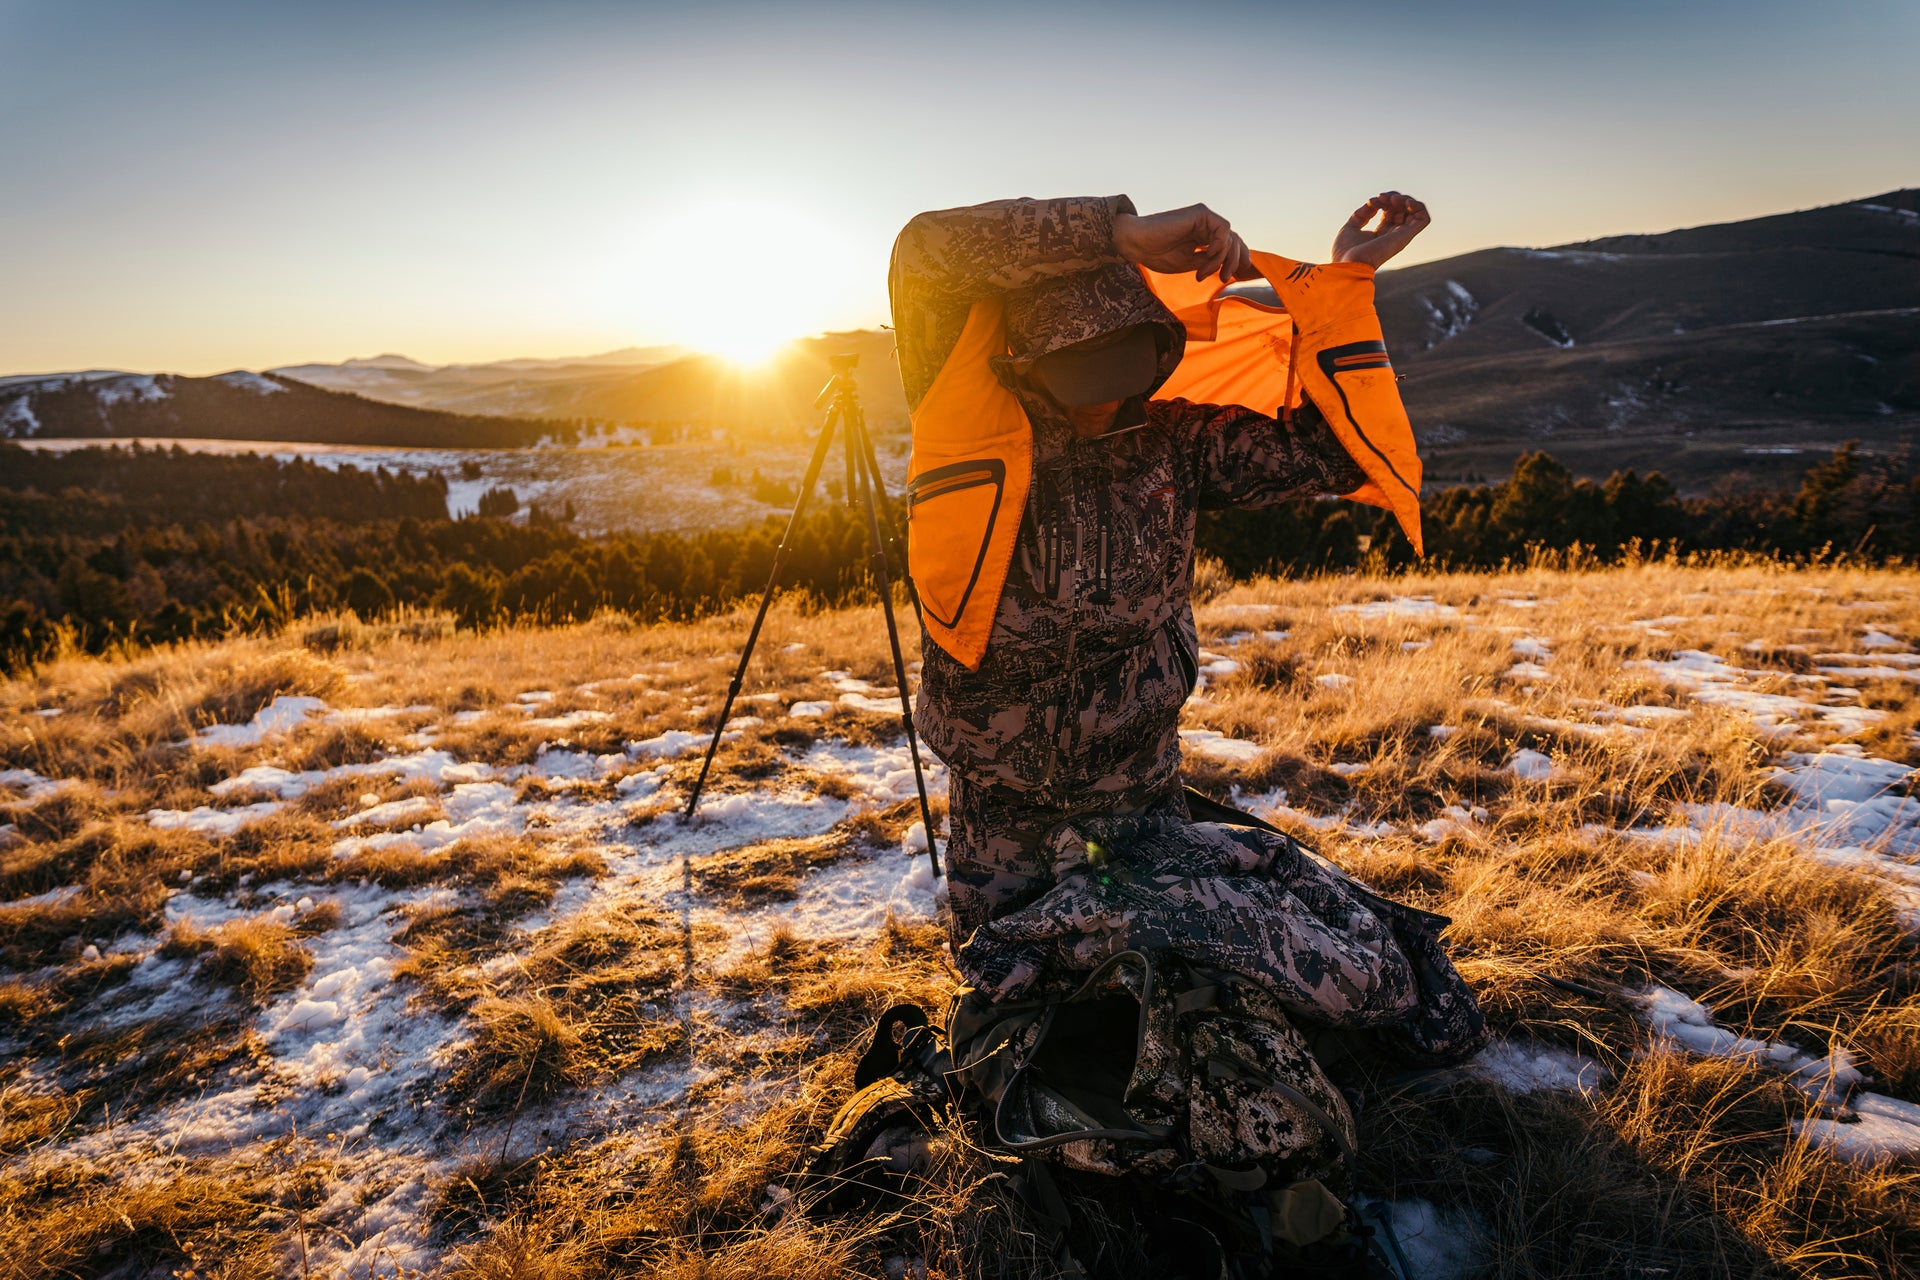 Sitka gear - man knelling putting on a ballistic vest over the Jetstream jacket while the sun rises